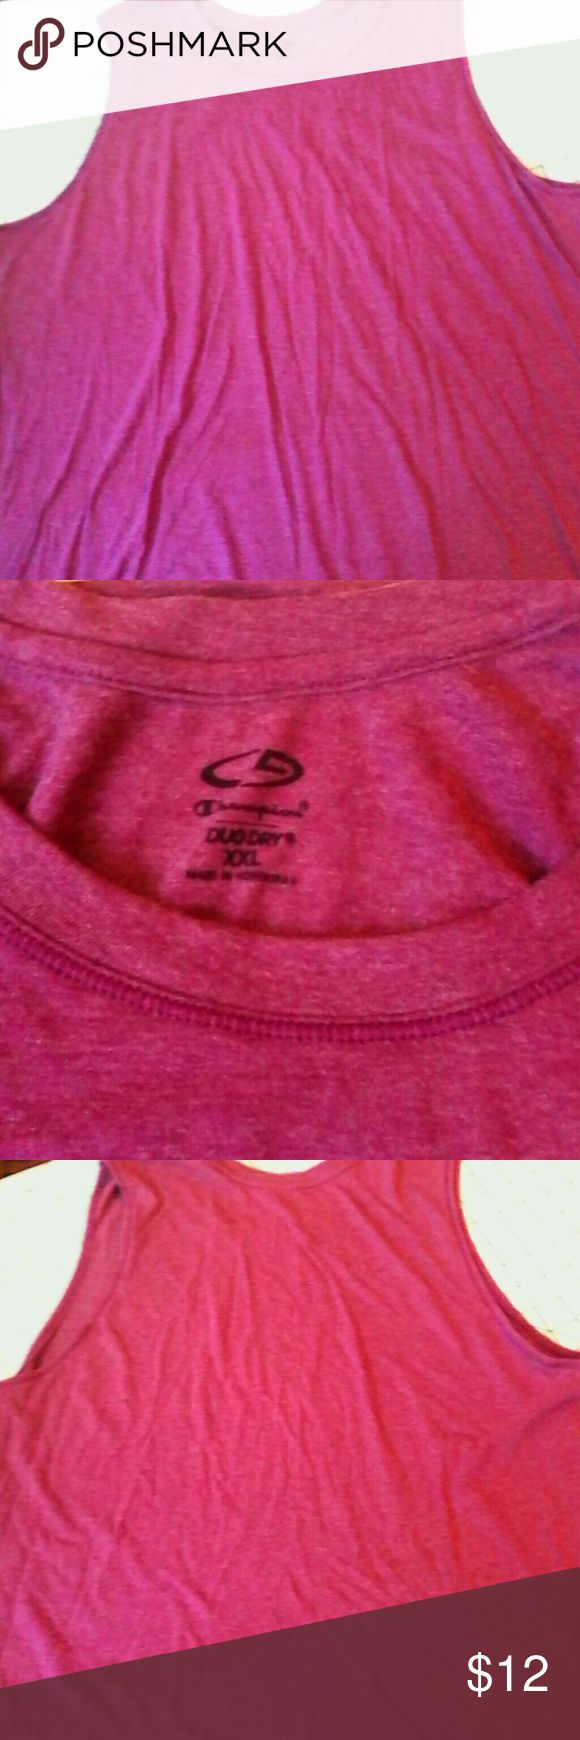 Champion Duo Dry Purple Tank Top XXL Sport Workout This is a tank top by Champion in a size XXL Rayon polyester fabric Style says Duo Dry Scoop neckline, deep armholes A deep red purple in color In excellent used condition Champion Tops Tank Tops